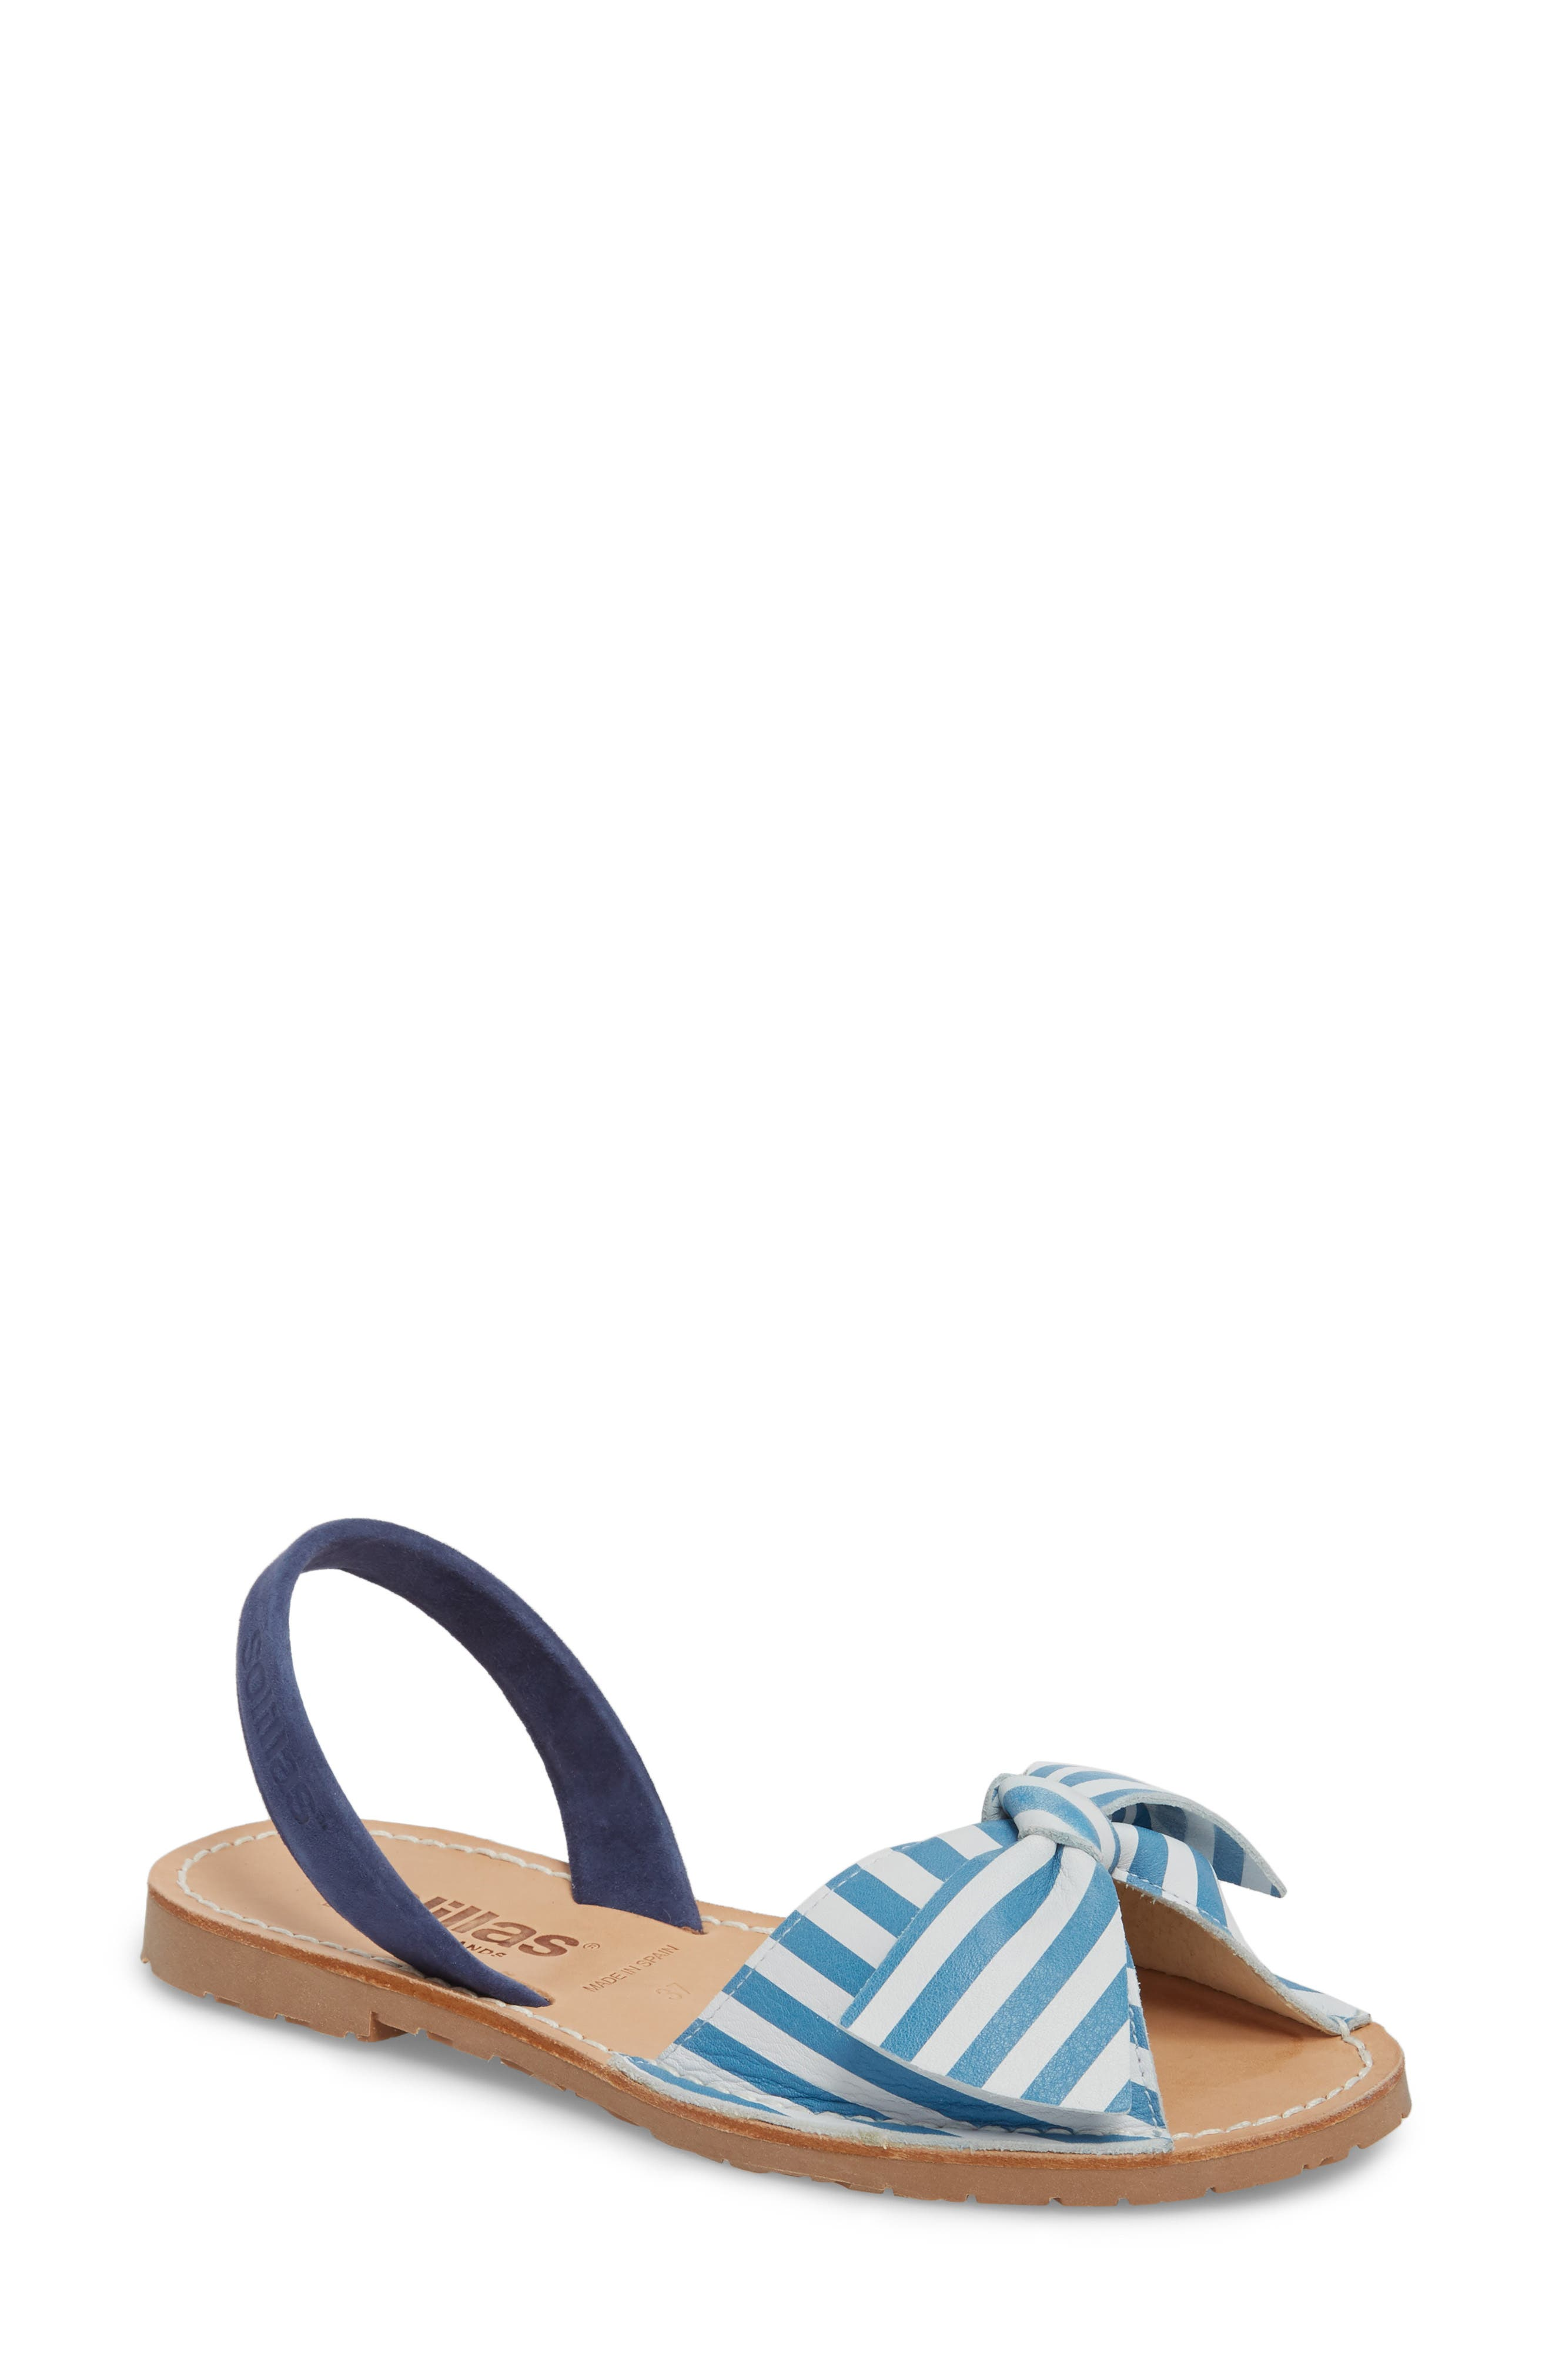 Bow Sandal,                             Main thumbnail 1, color,                             BLUE AND WHITE